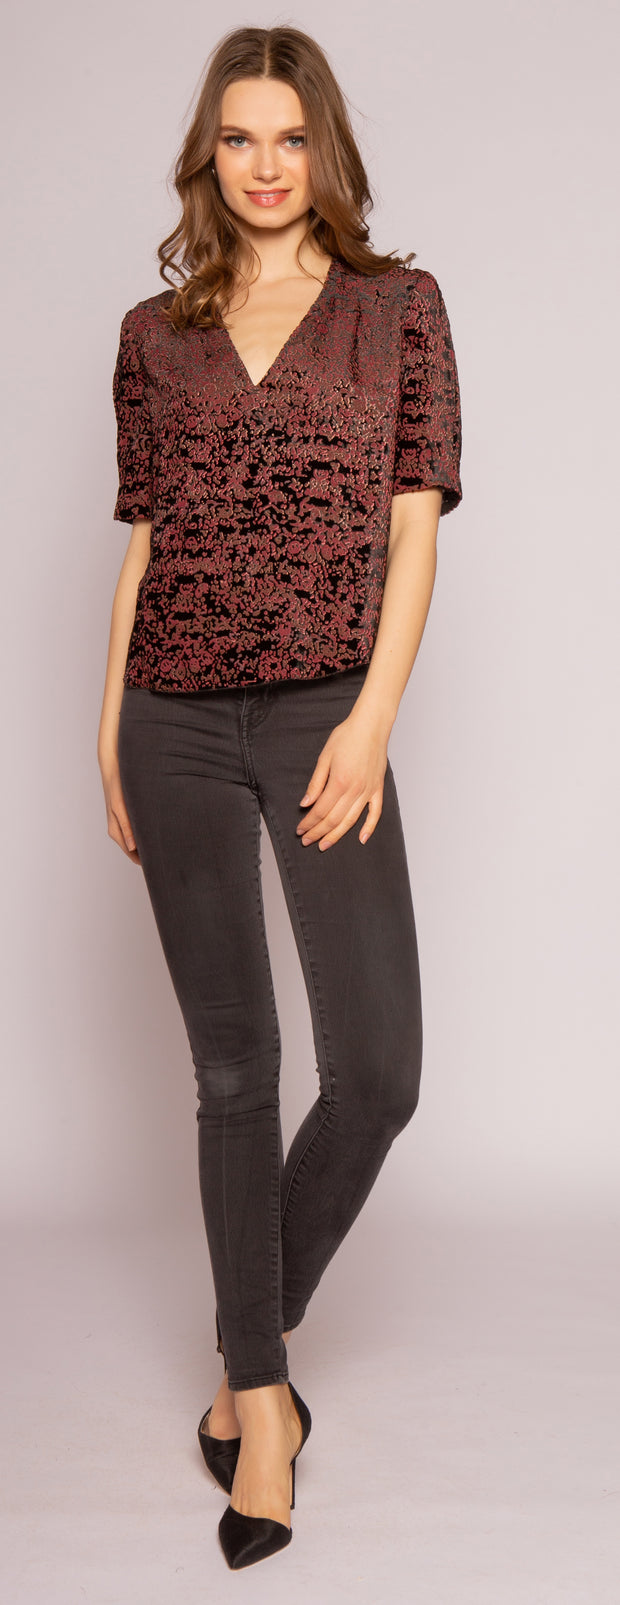 Burgundy Velvet Burnout Top by Lavender Brown 001